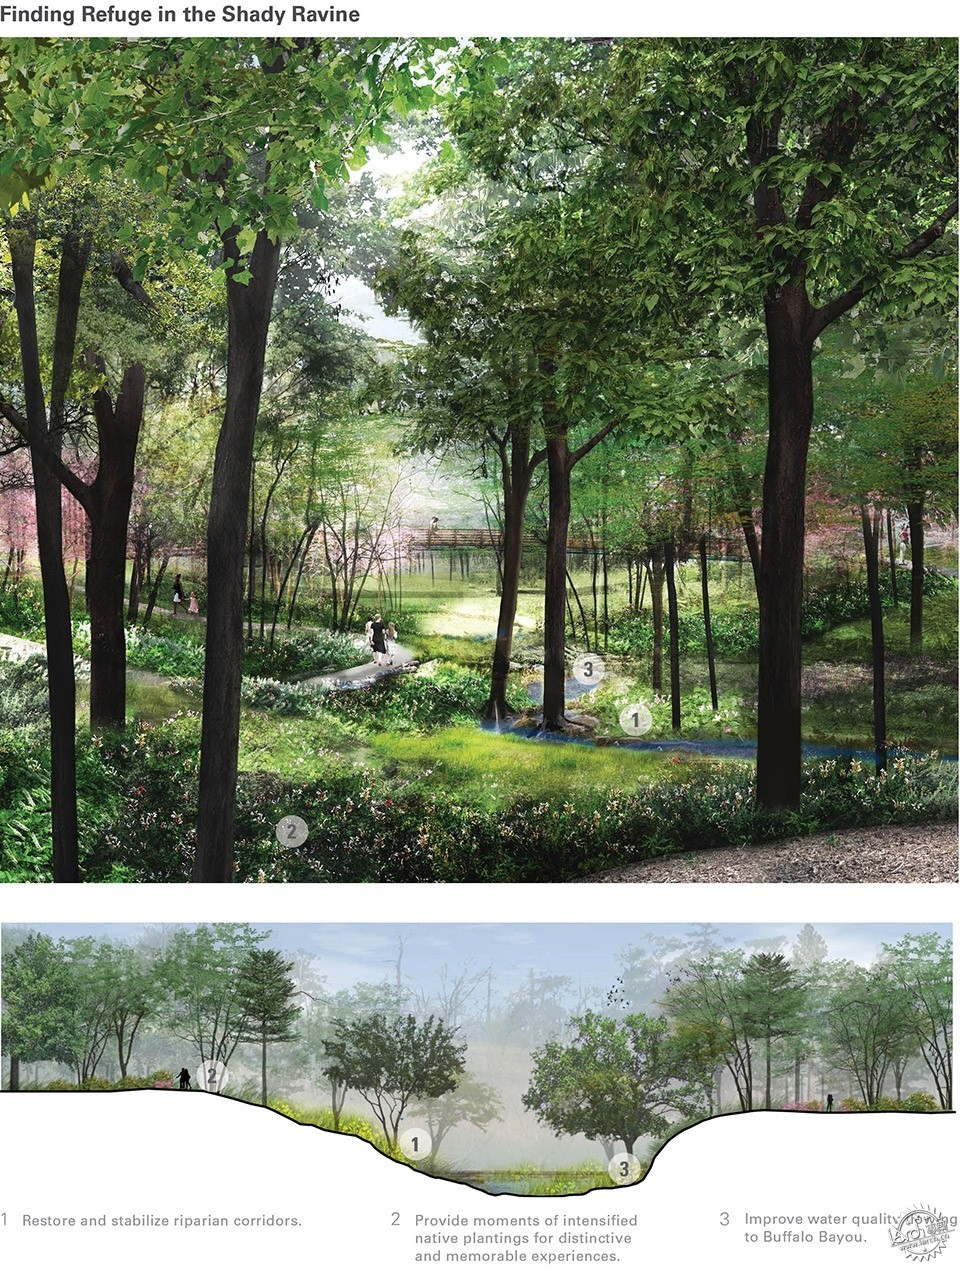 Devastation to Resilience: The Houston Arboretum & Nature Center第11张图片